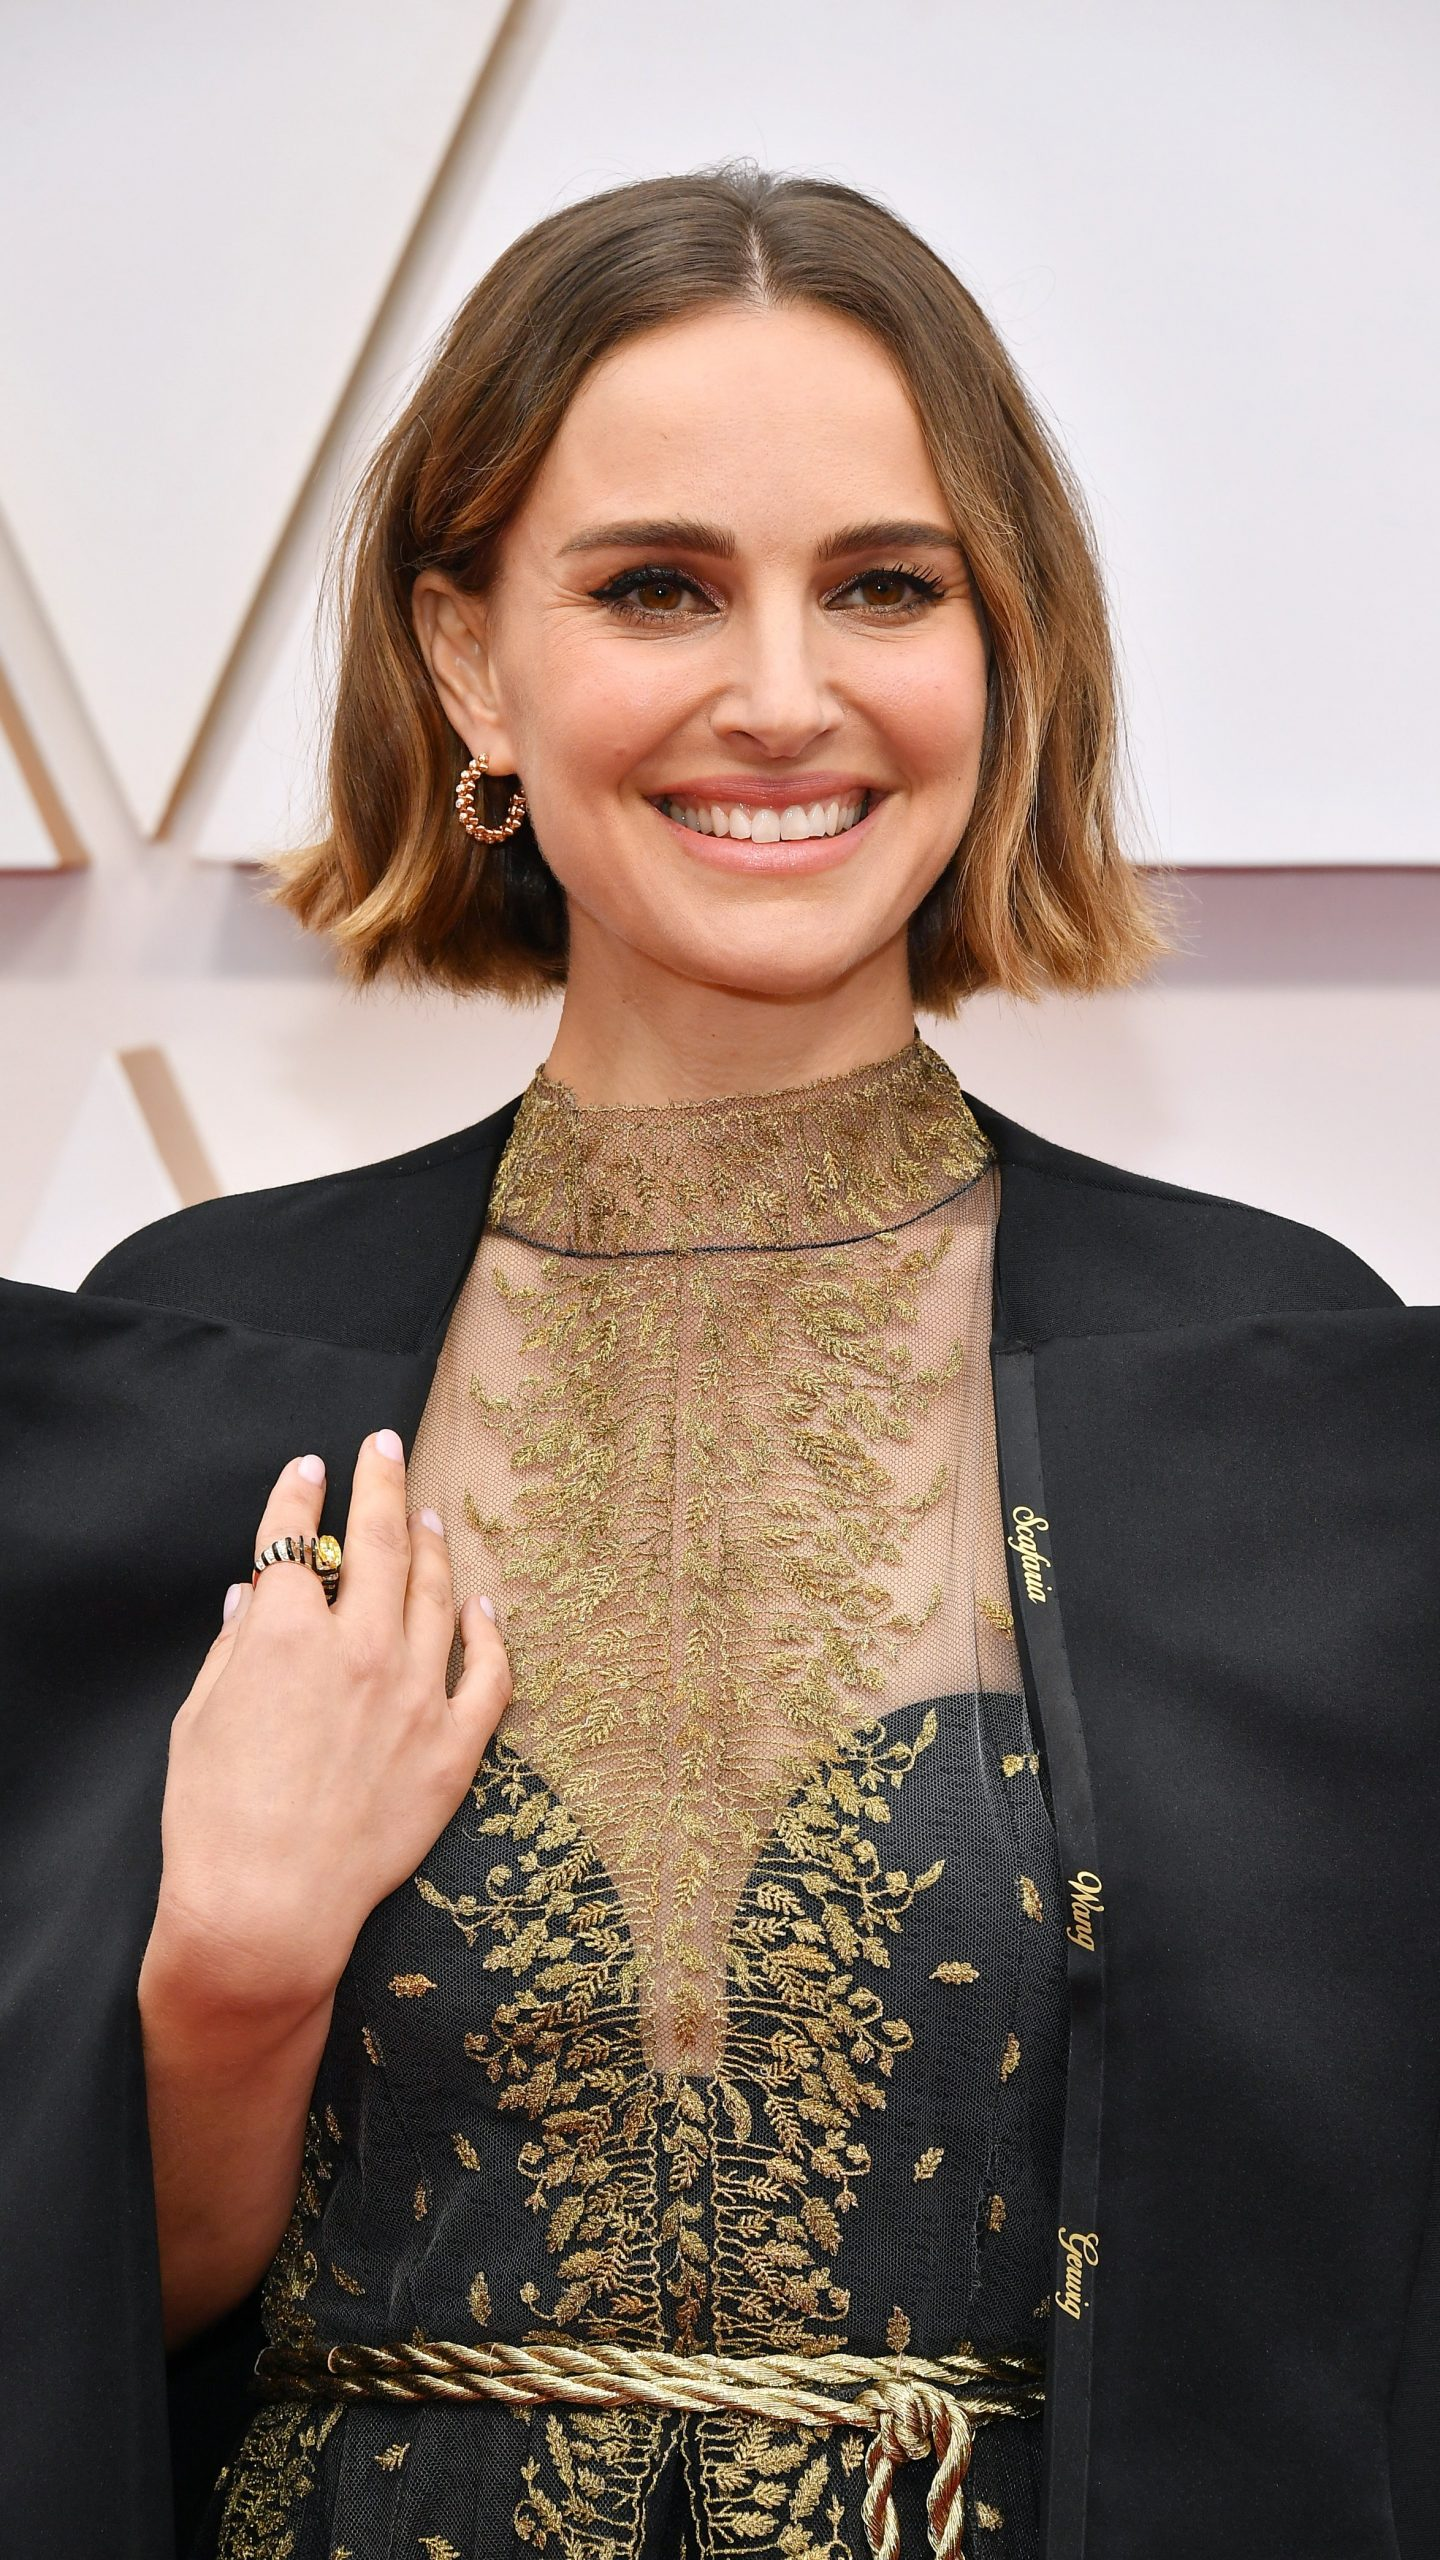 Natalie at Oscars 2020